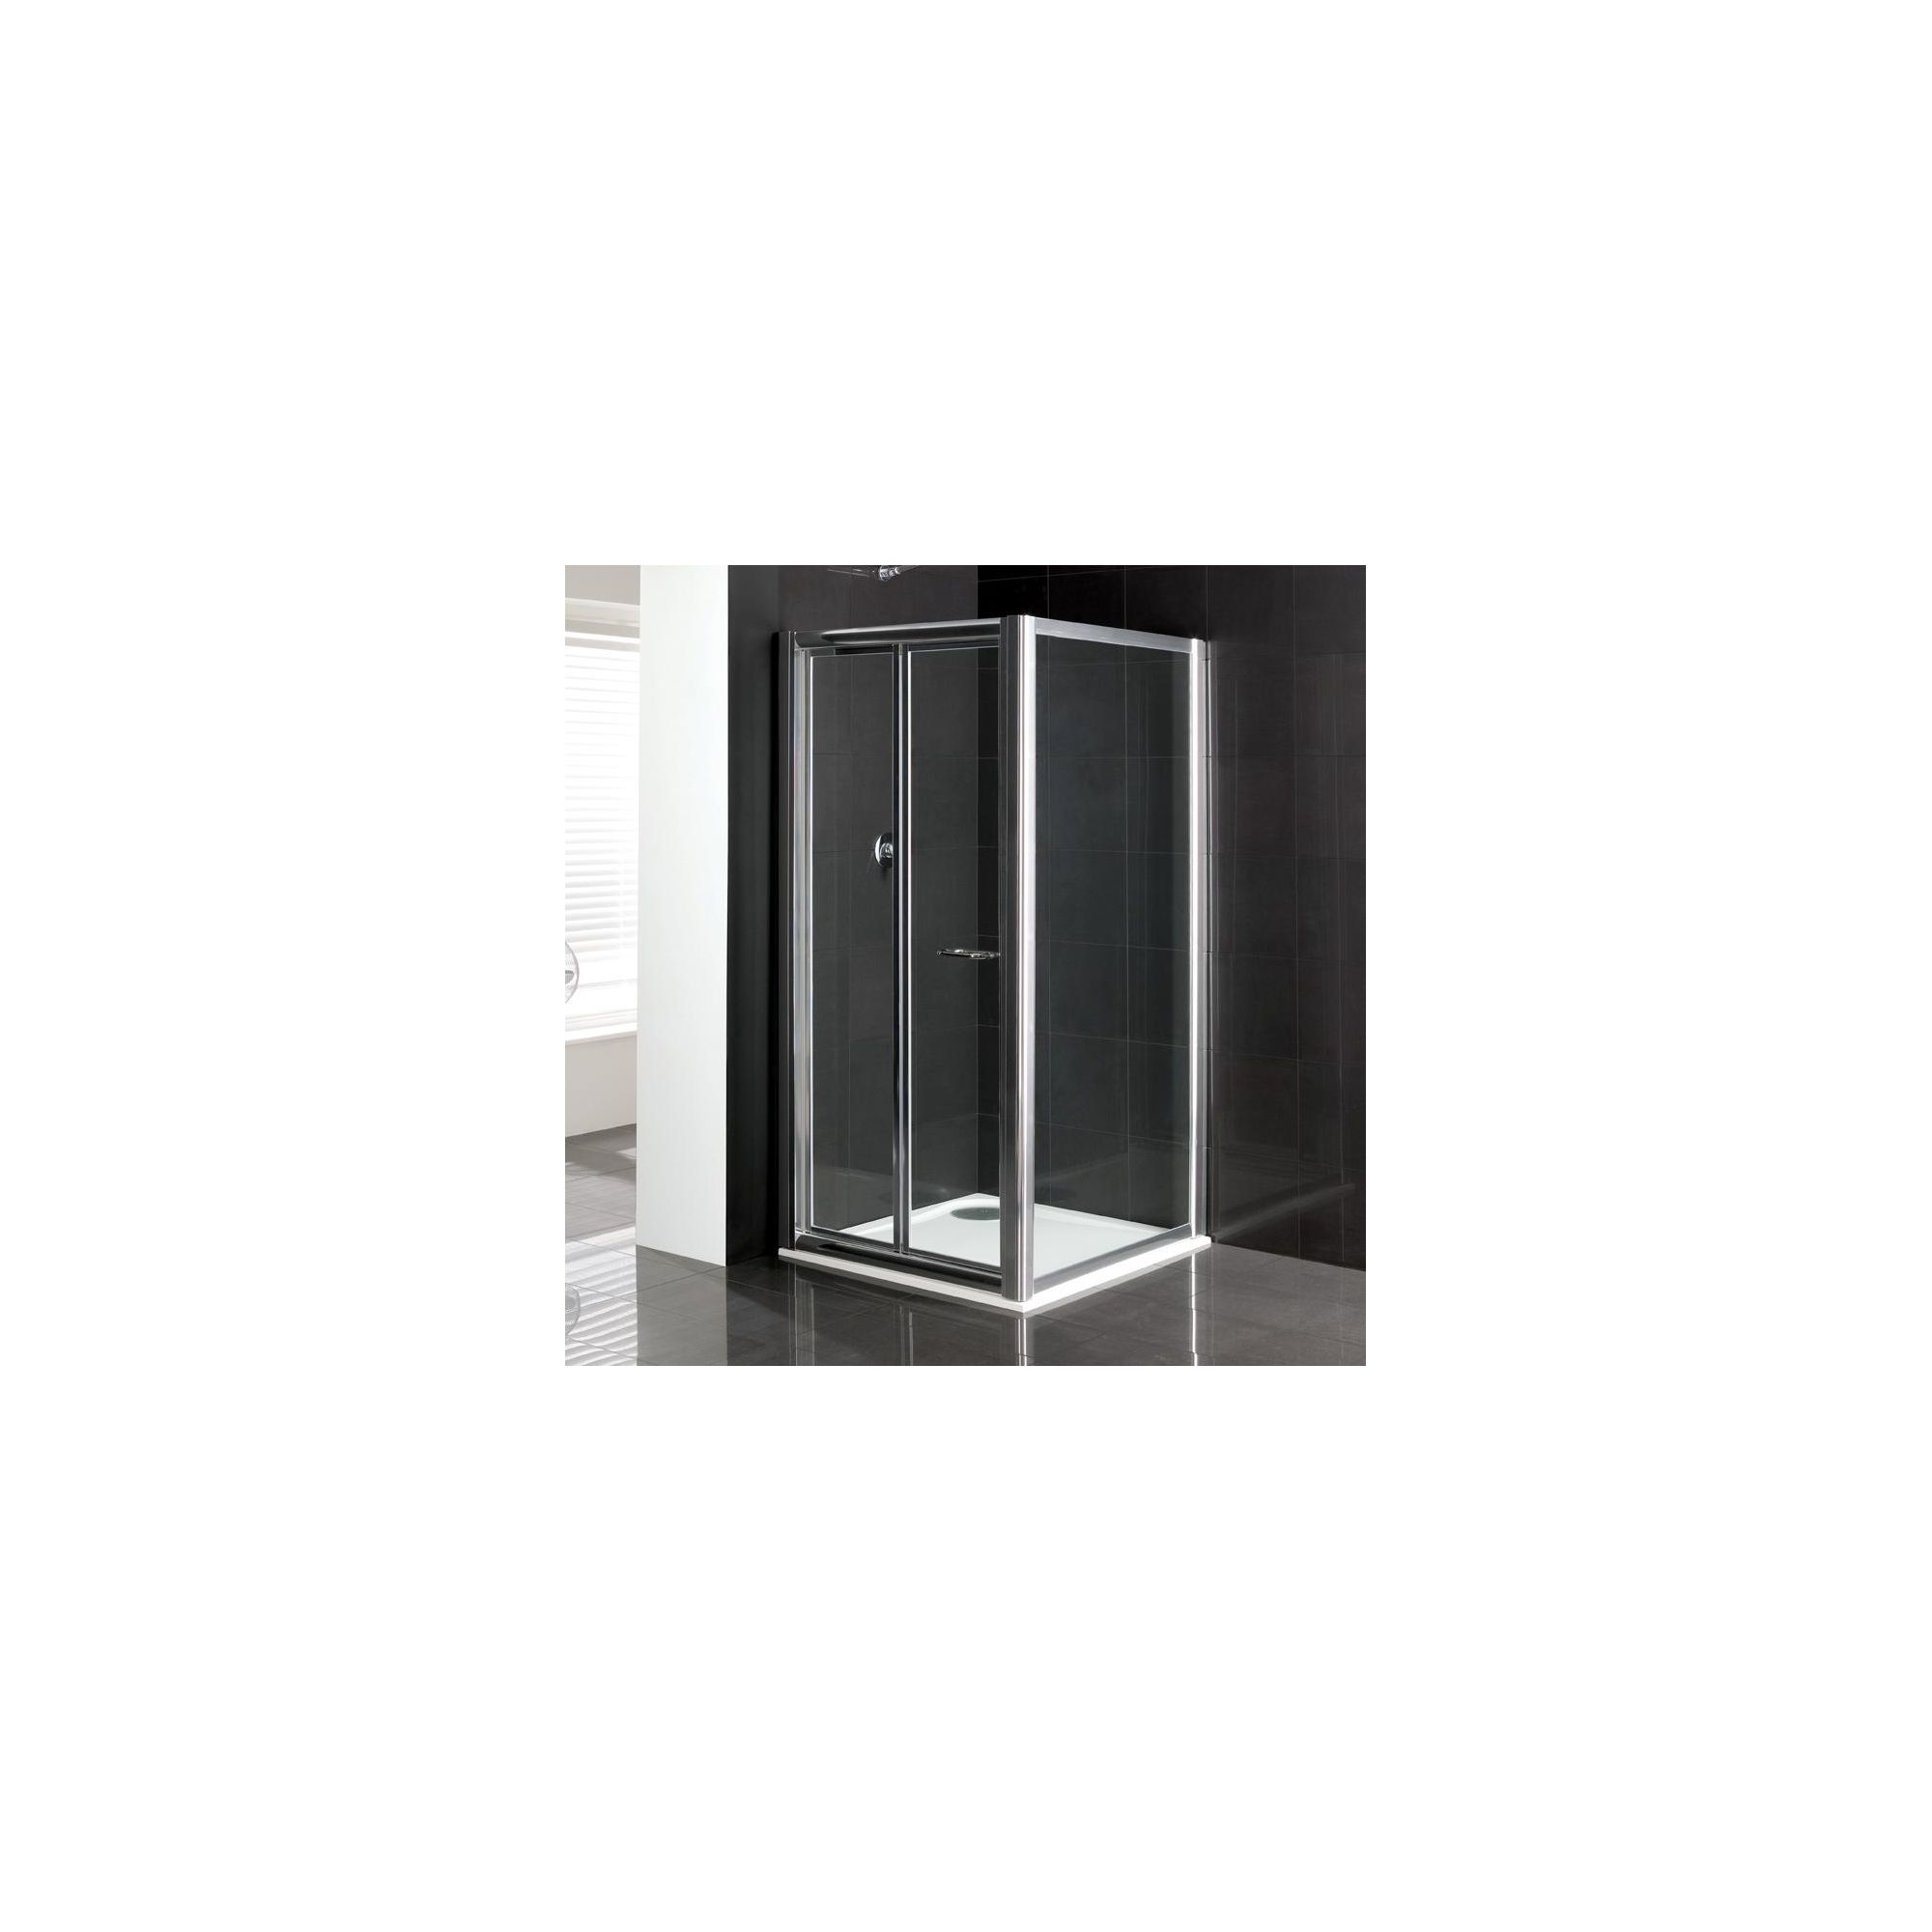 Duchy Elite Silver Bi-Fold Door Shower Enclosure, 800mm x 700mm, Standard Tray, 6mm Glass at Tesco Direct